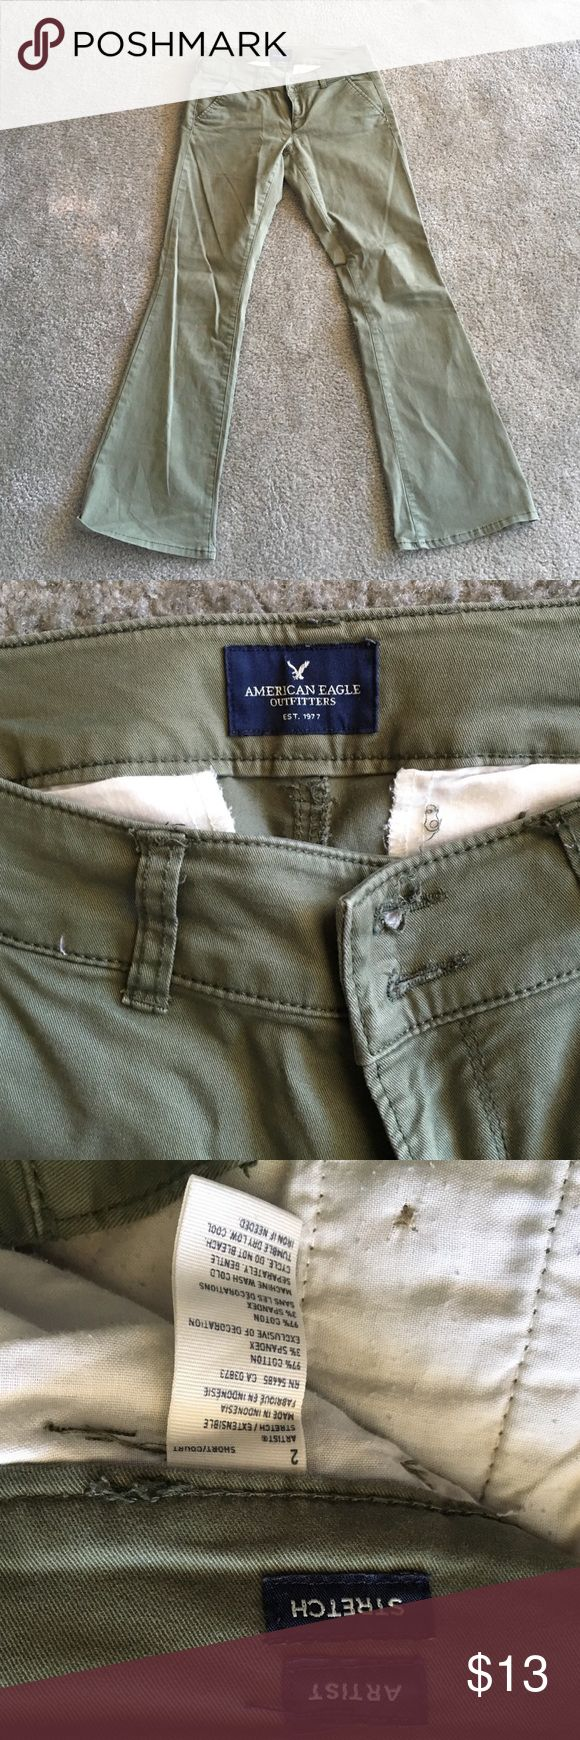 Olive green artist pants from American Eagle Olive green artist style pants from American Eagle. Size 2 short. In perfect condition, do not fit anymore. American Eagle Outfitters Pants Trousers